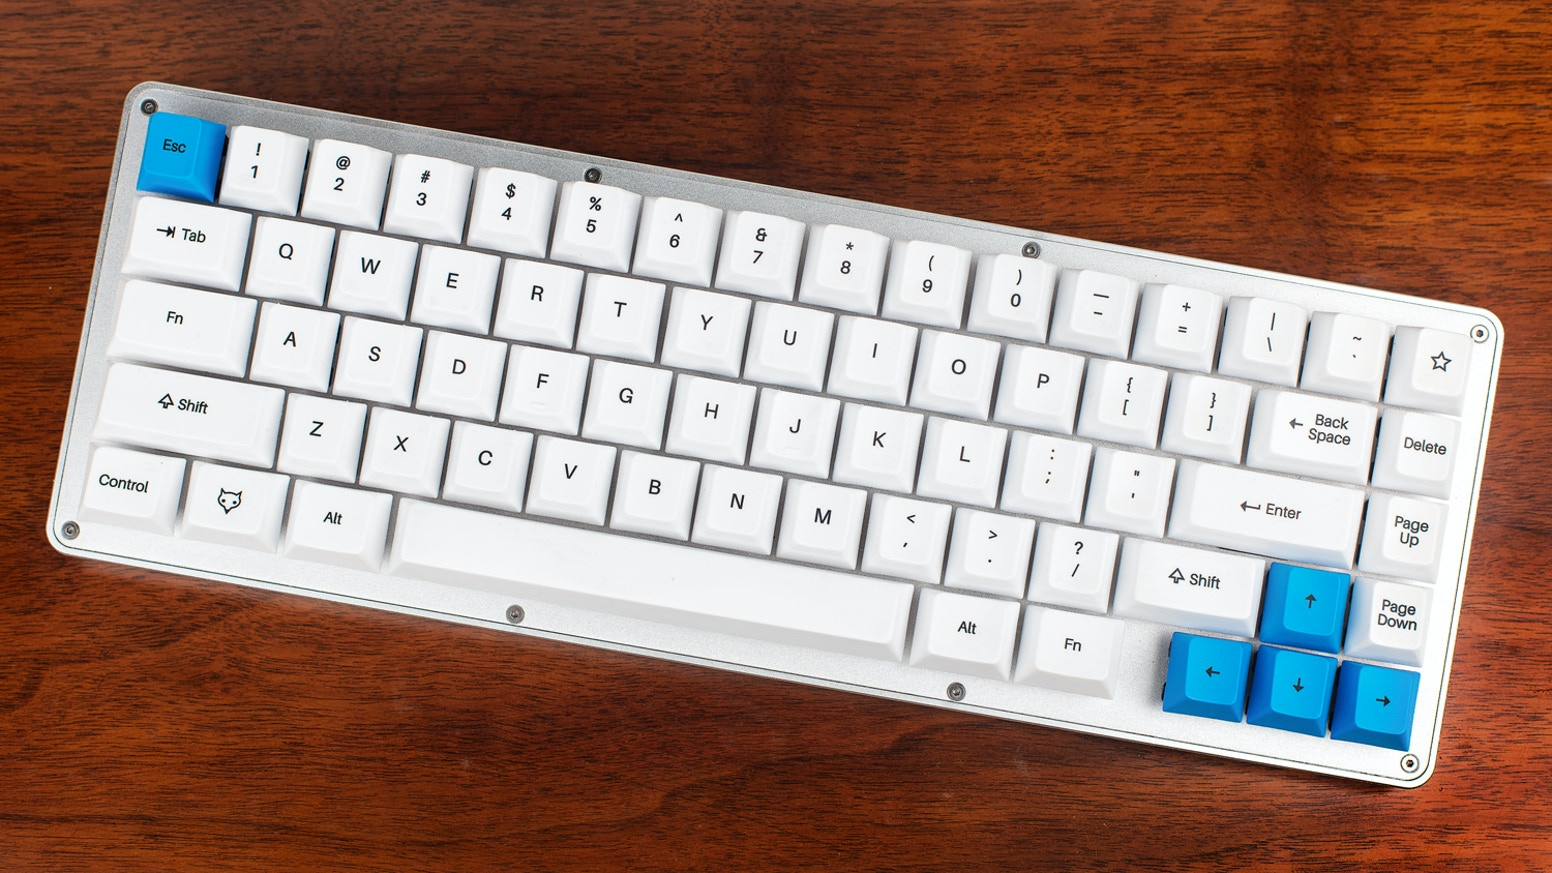 The WhiteFox is a fully programmable, compact keyboard with an aluminum frame and custom keyswitches. Designed by Matteo + Input Club.